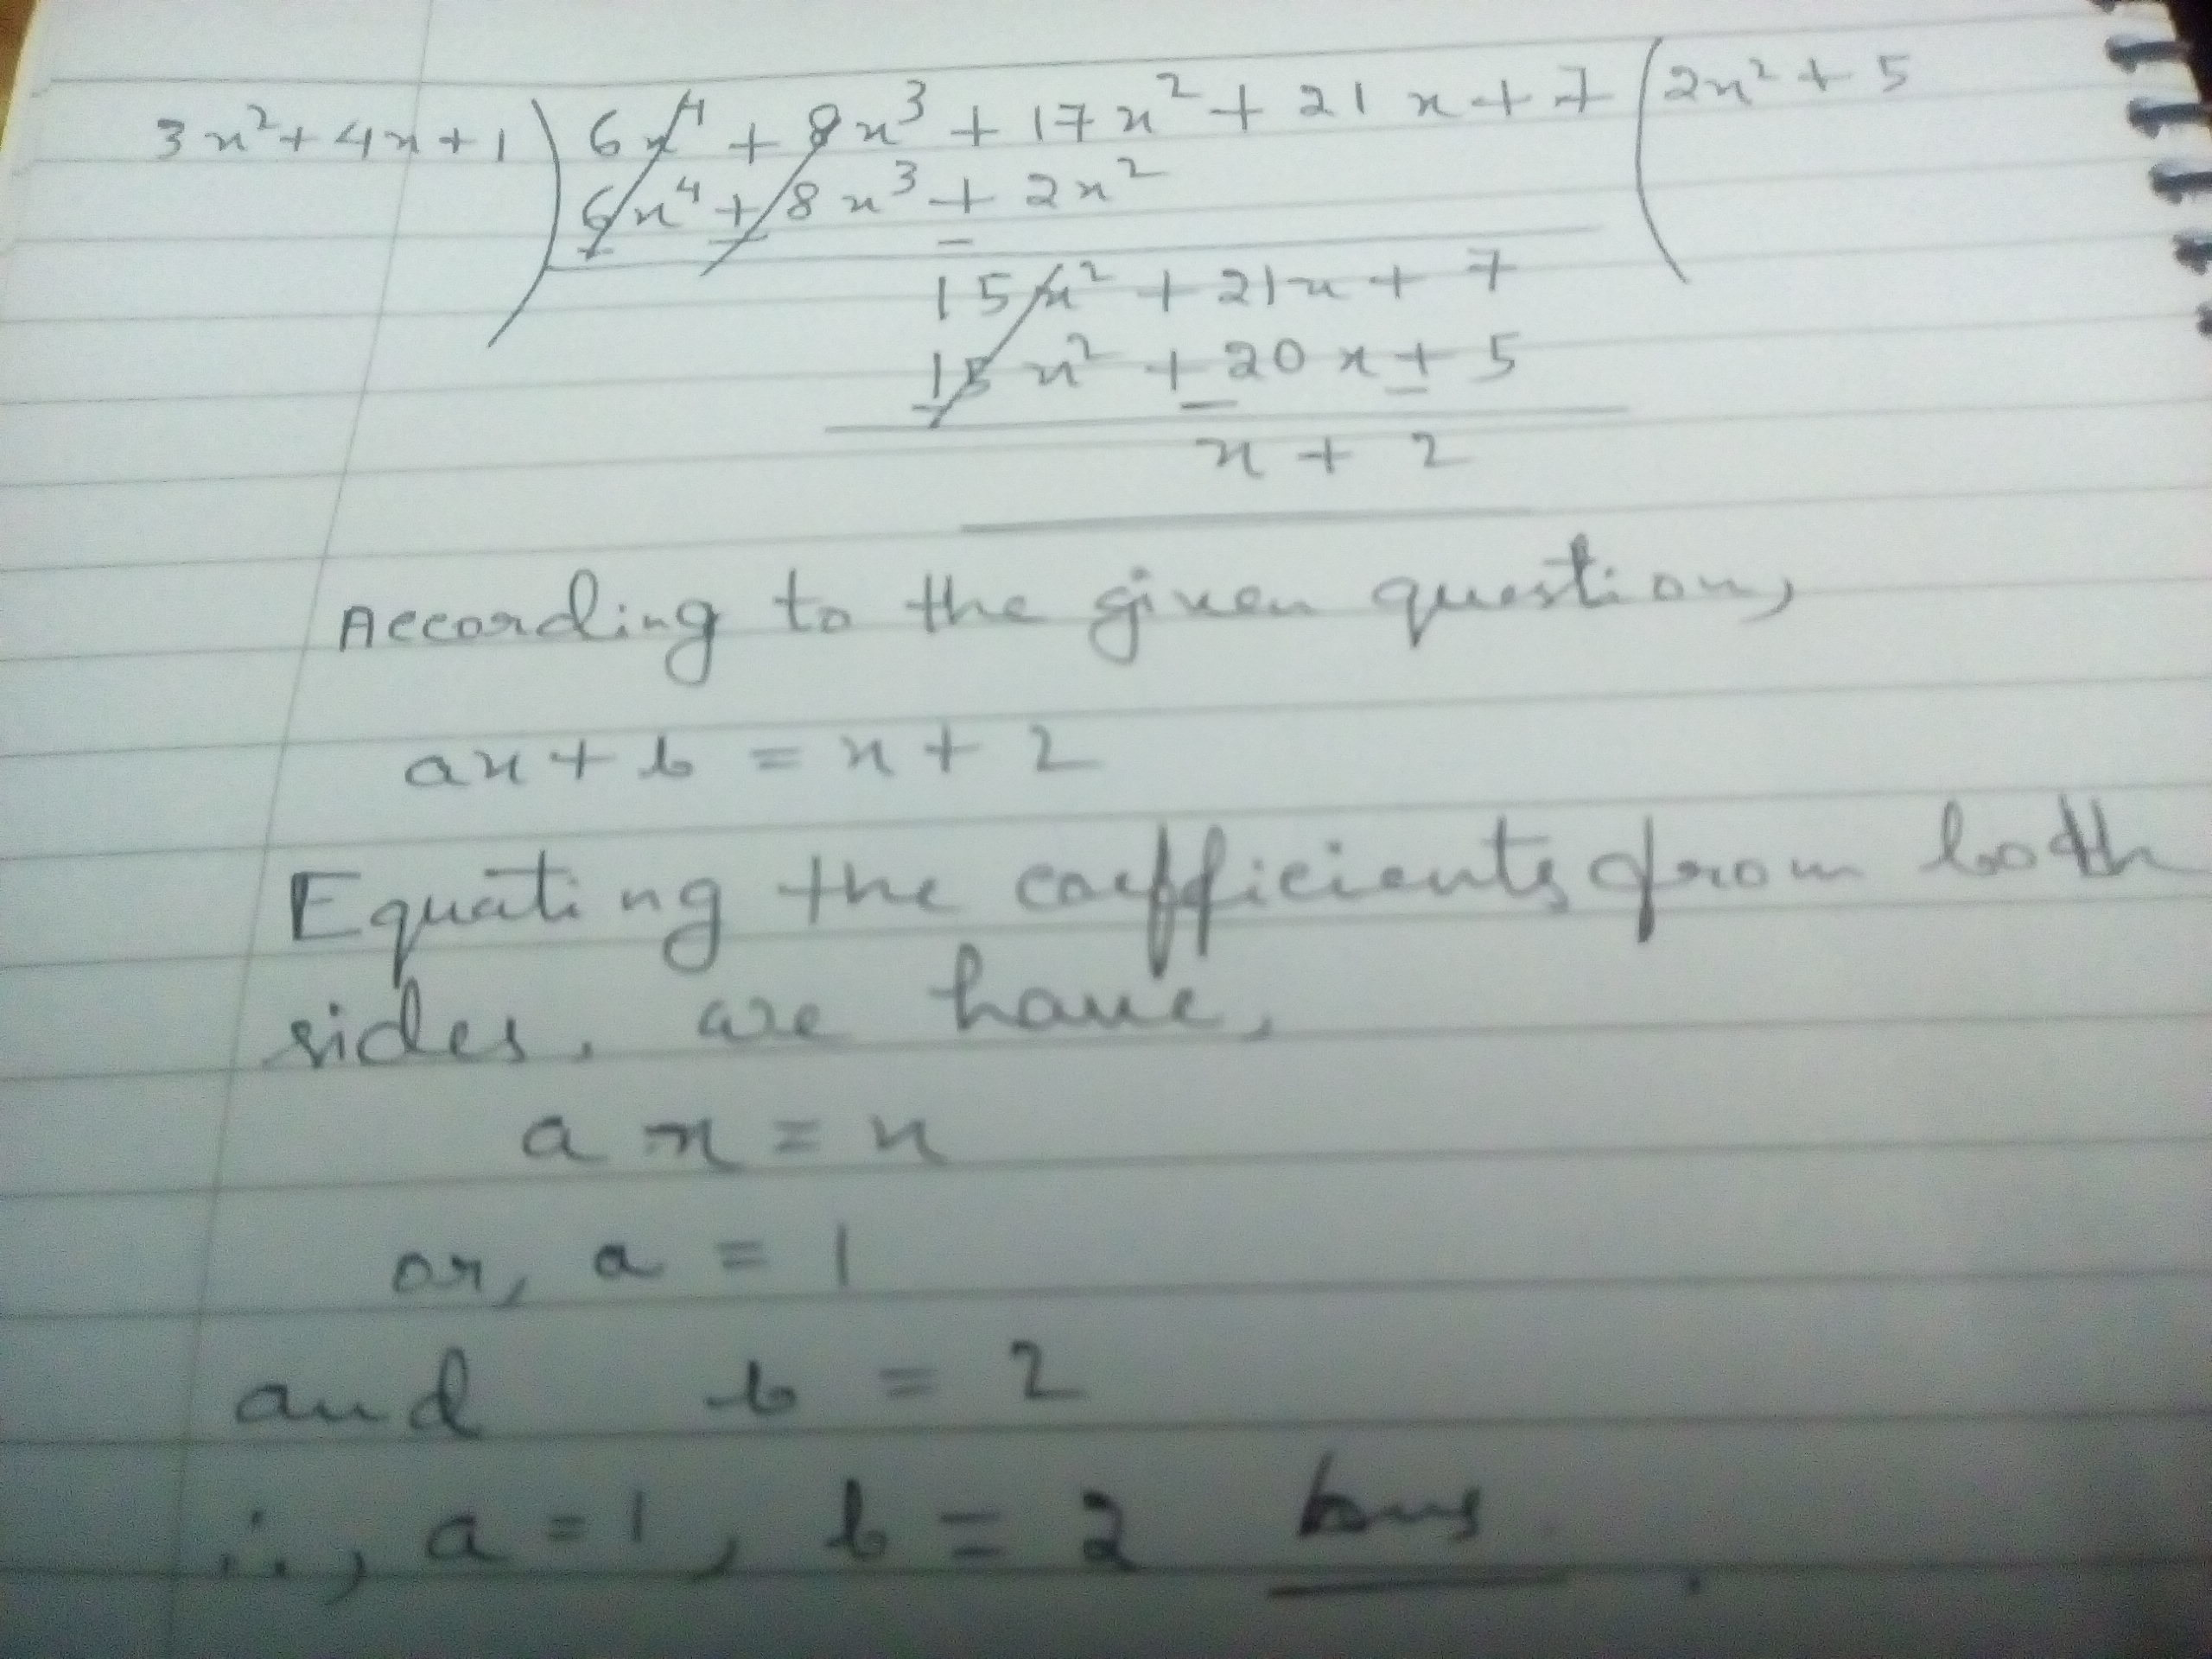 a divided by b_If the polynomial 6x 4 + 8x 3 + 17x 2 + 21x + 7 is divided another polynomial 3x 2 ...